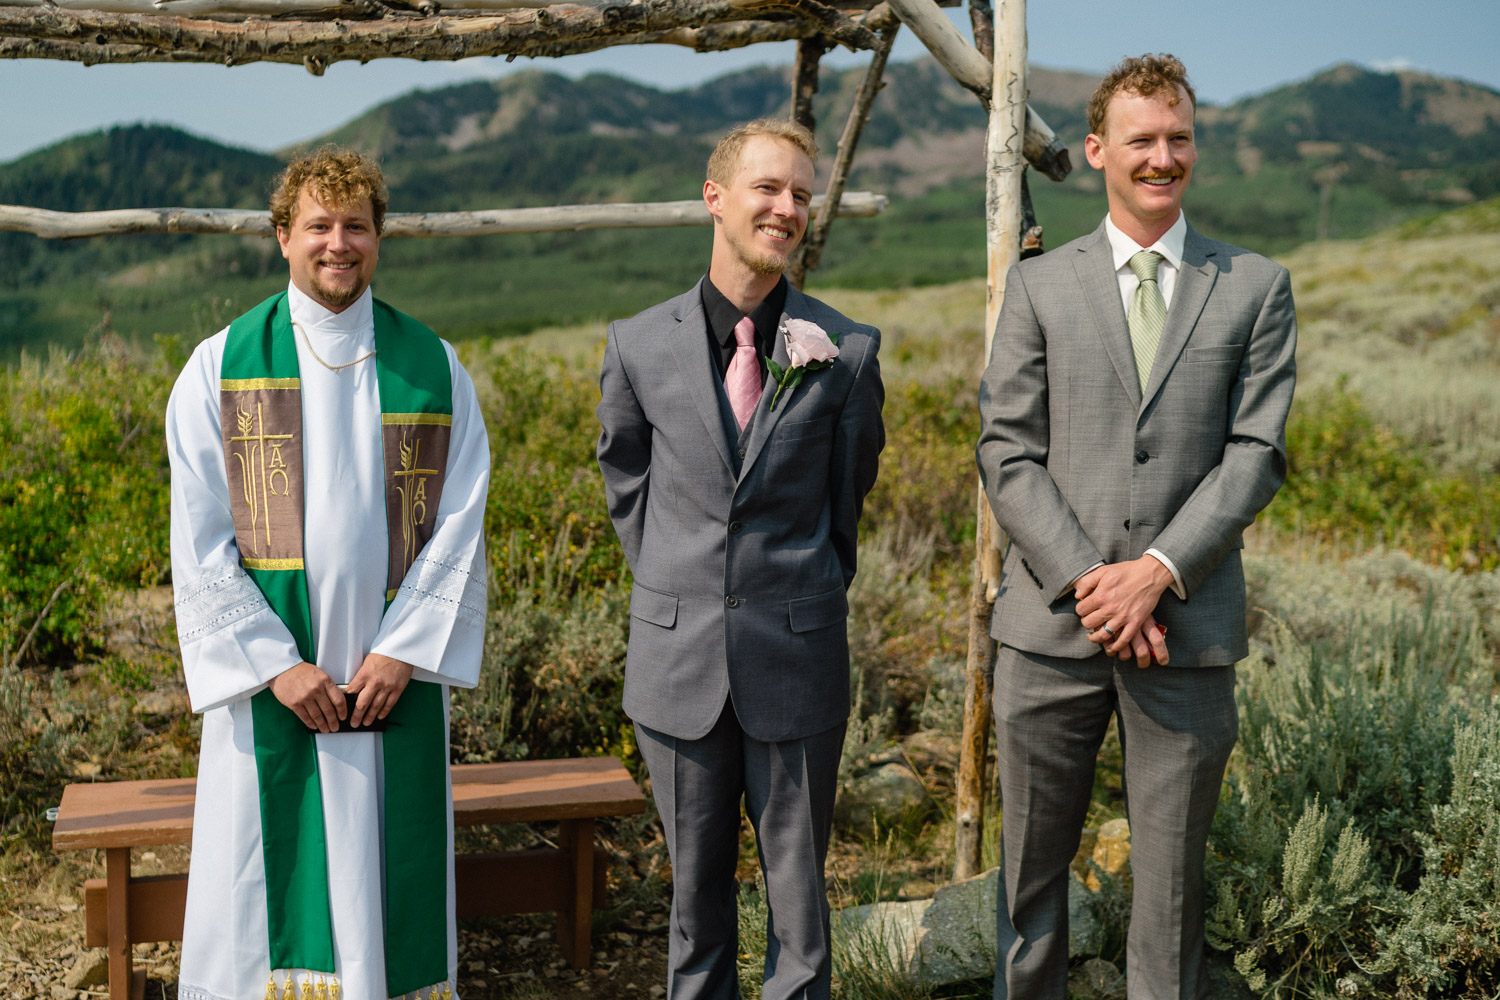 groom officiant and grooms men smiling at bride walking down aisle outside